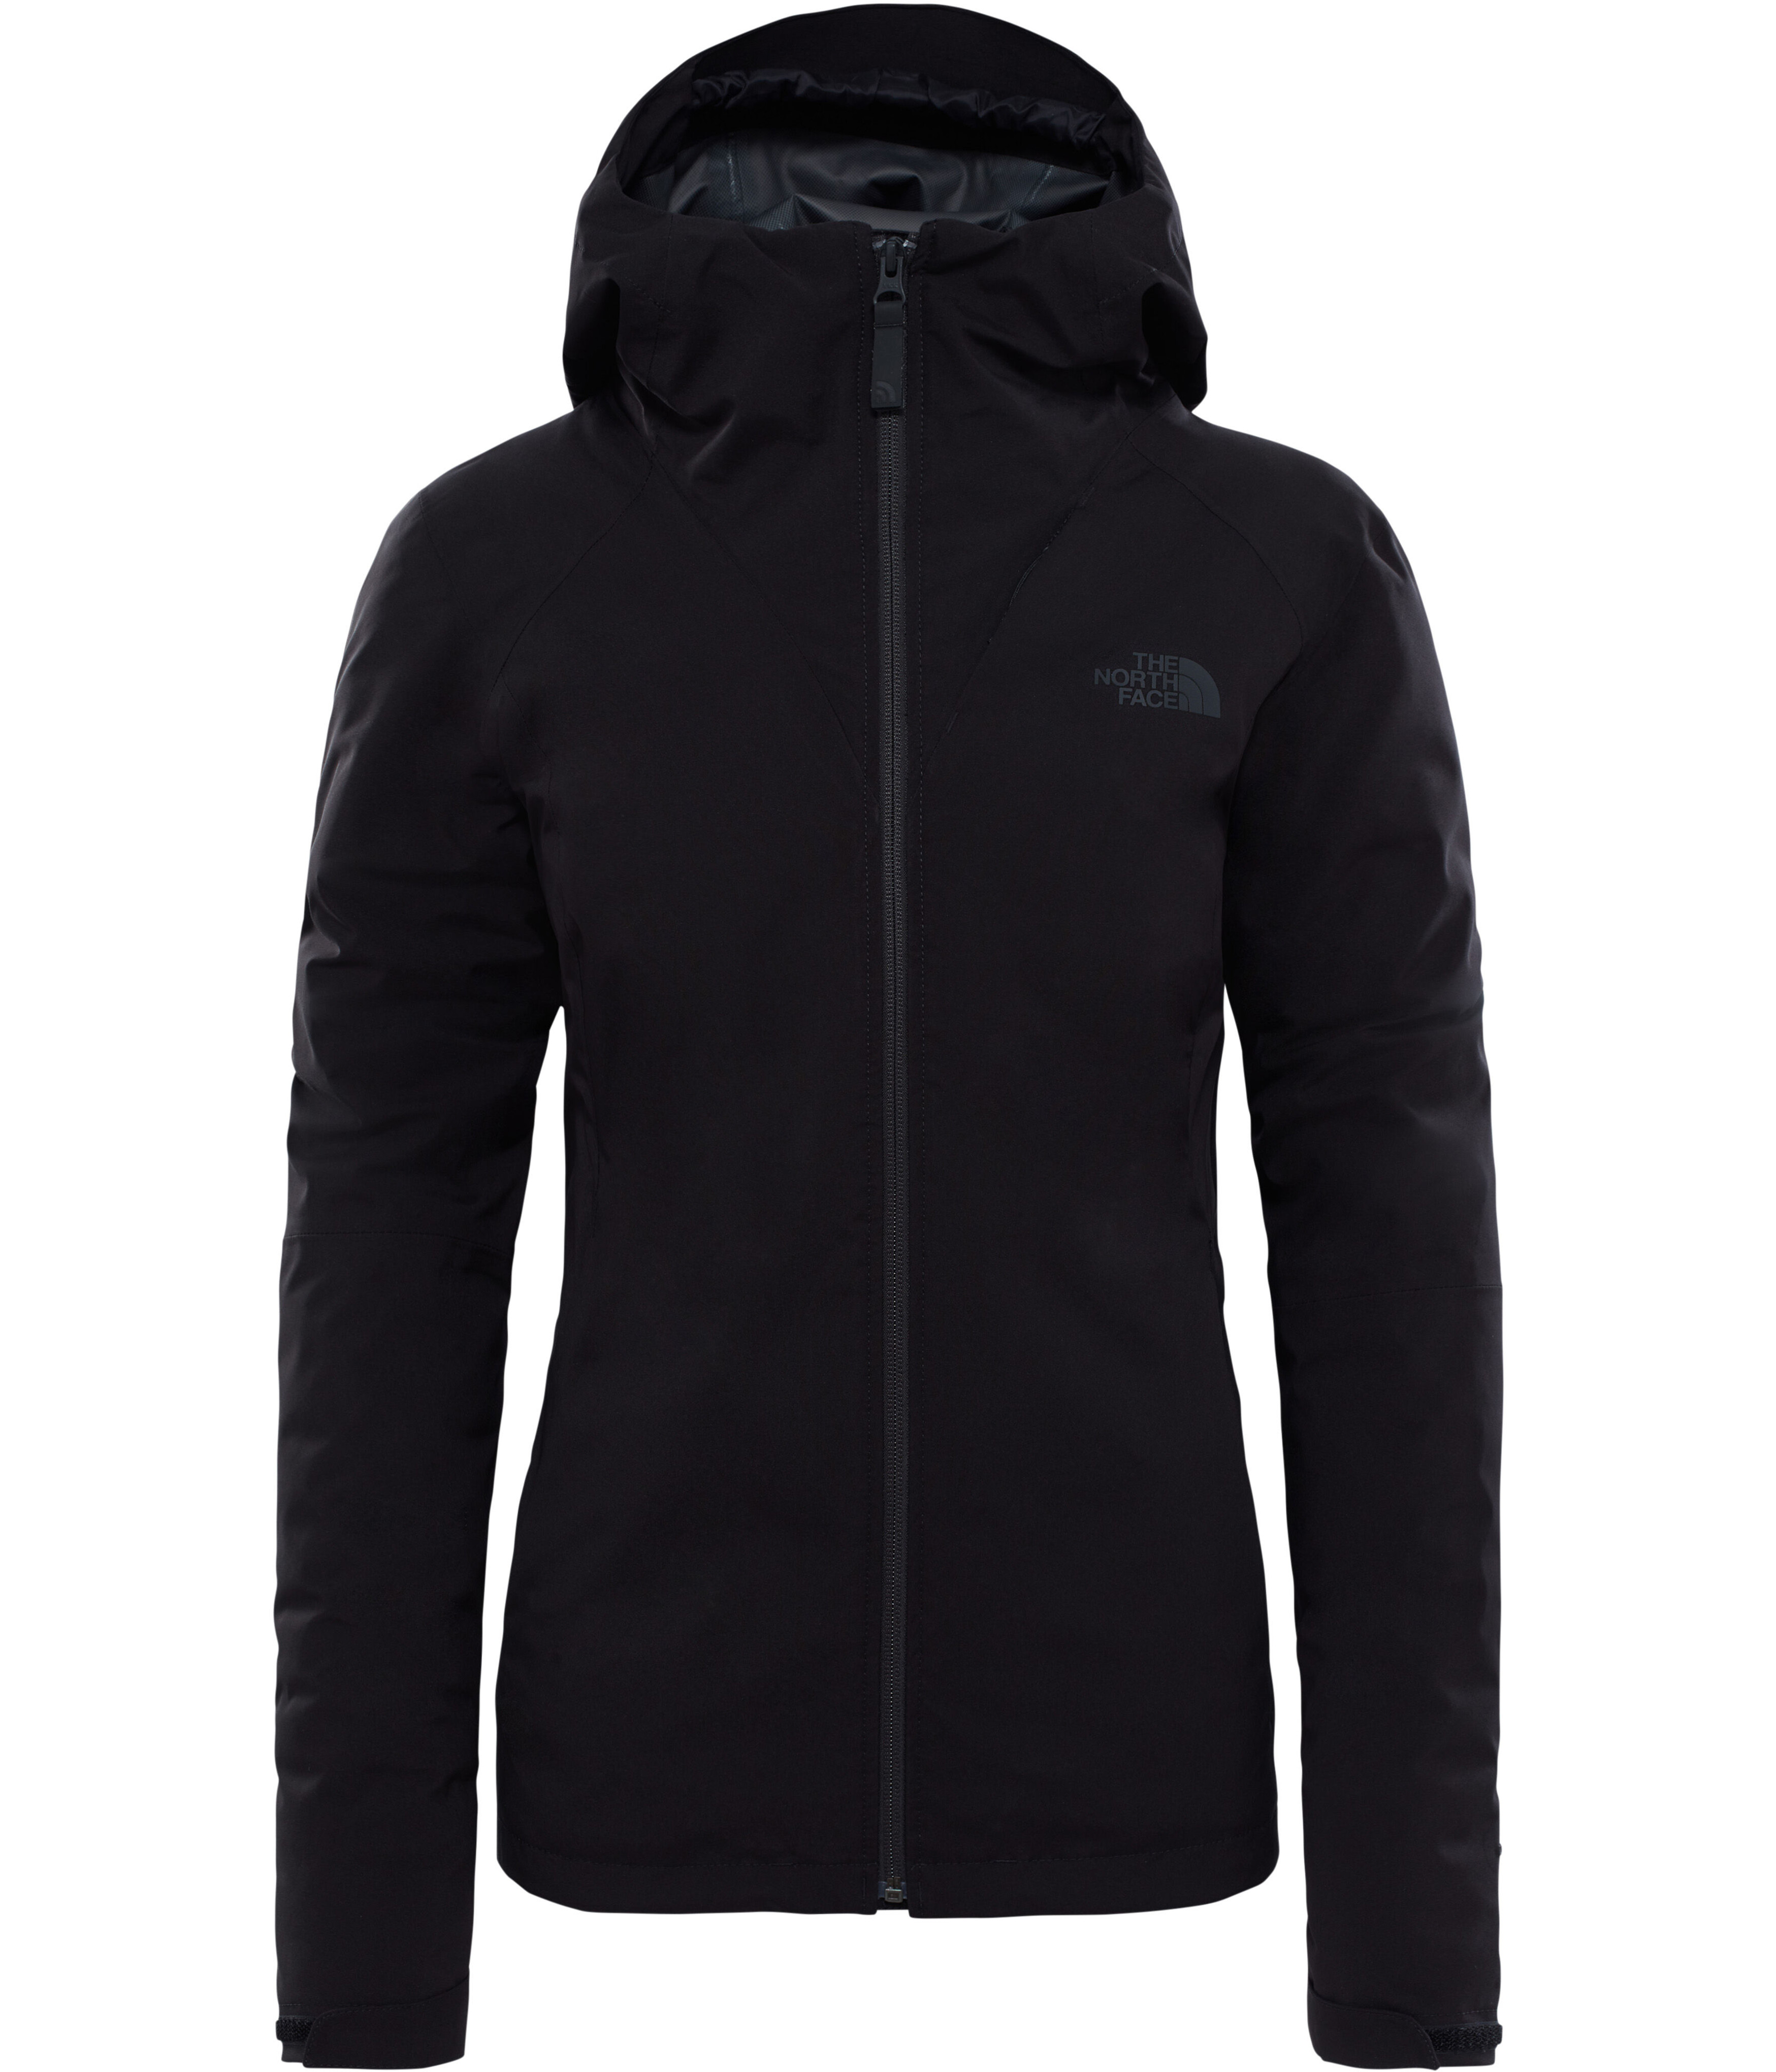 09f75bf6087f6 The North Face Thermoball 3 1 Triclimate - Veste Femme - noir sur ...